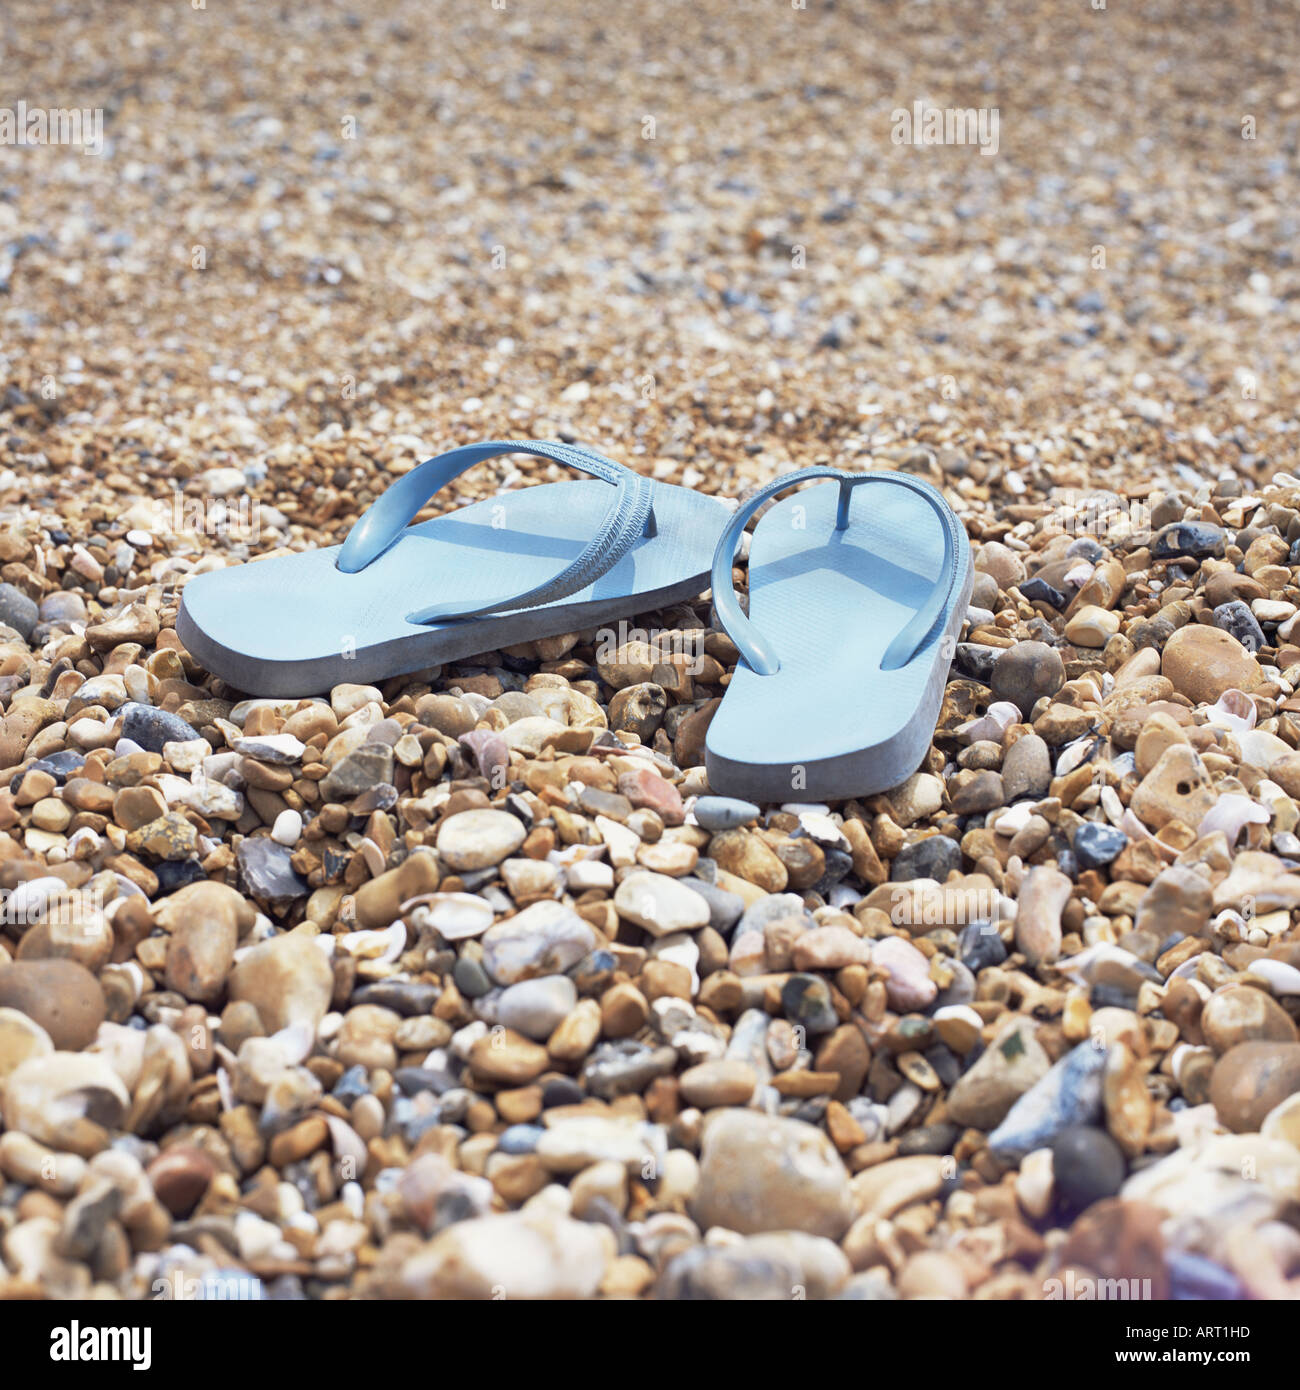 Flip flops on a shingle beach - Stock Image